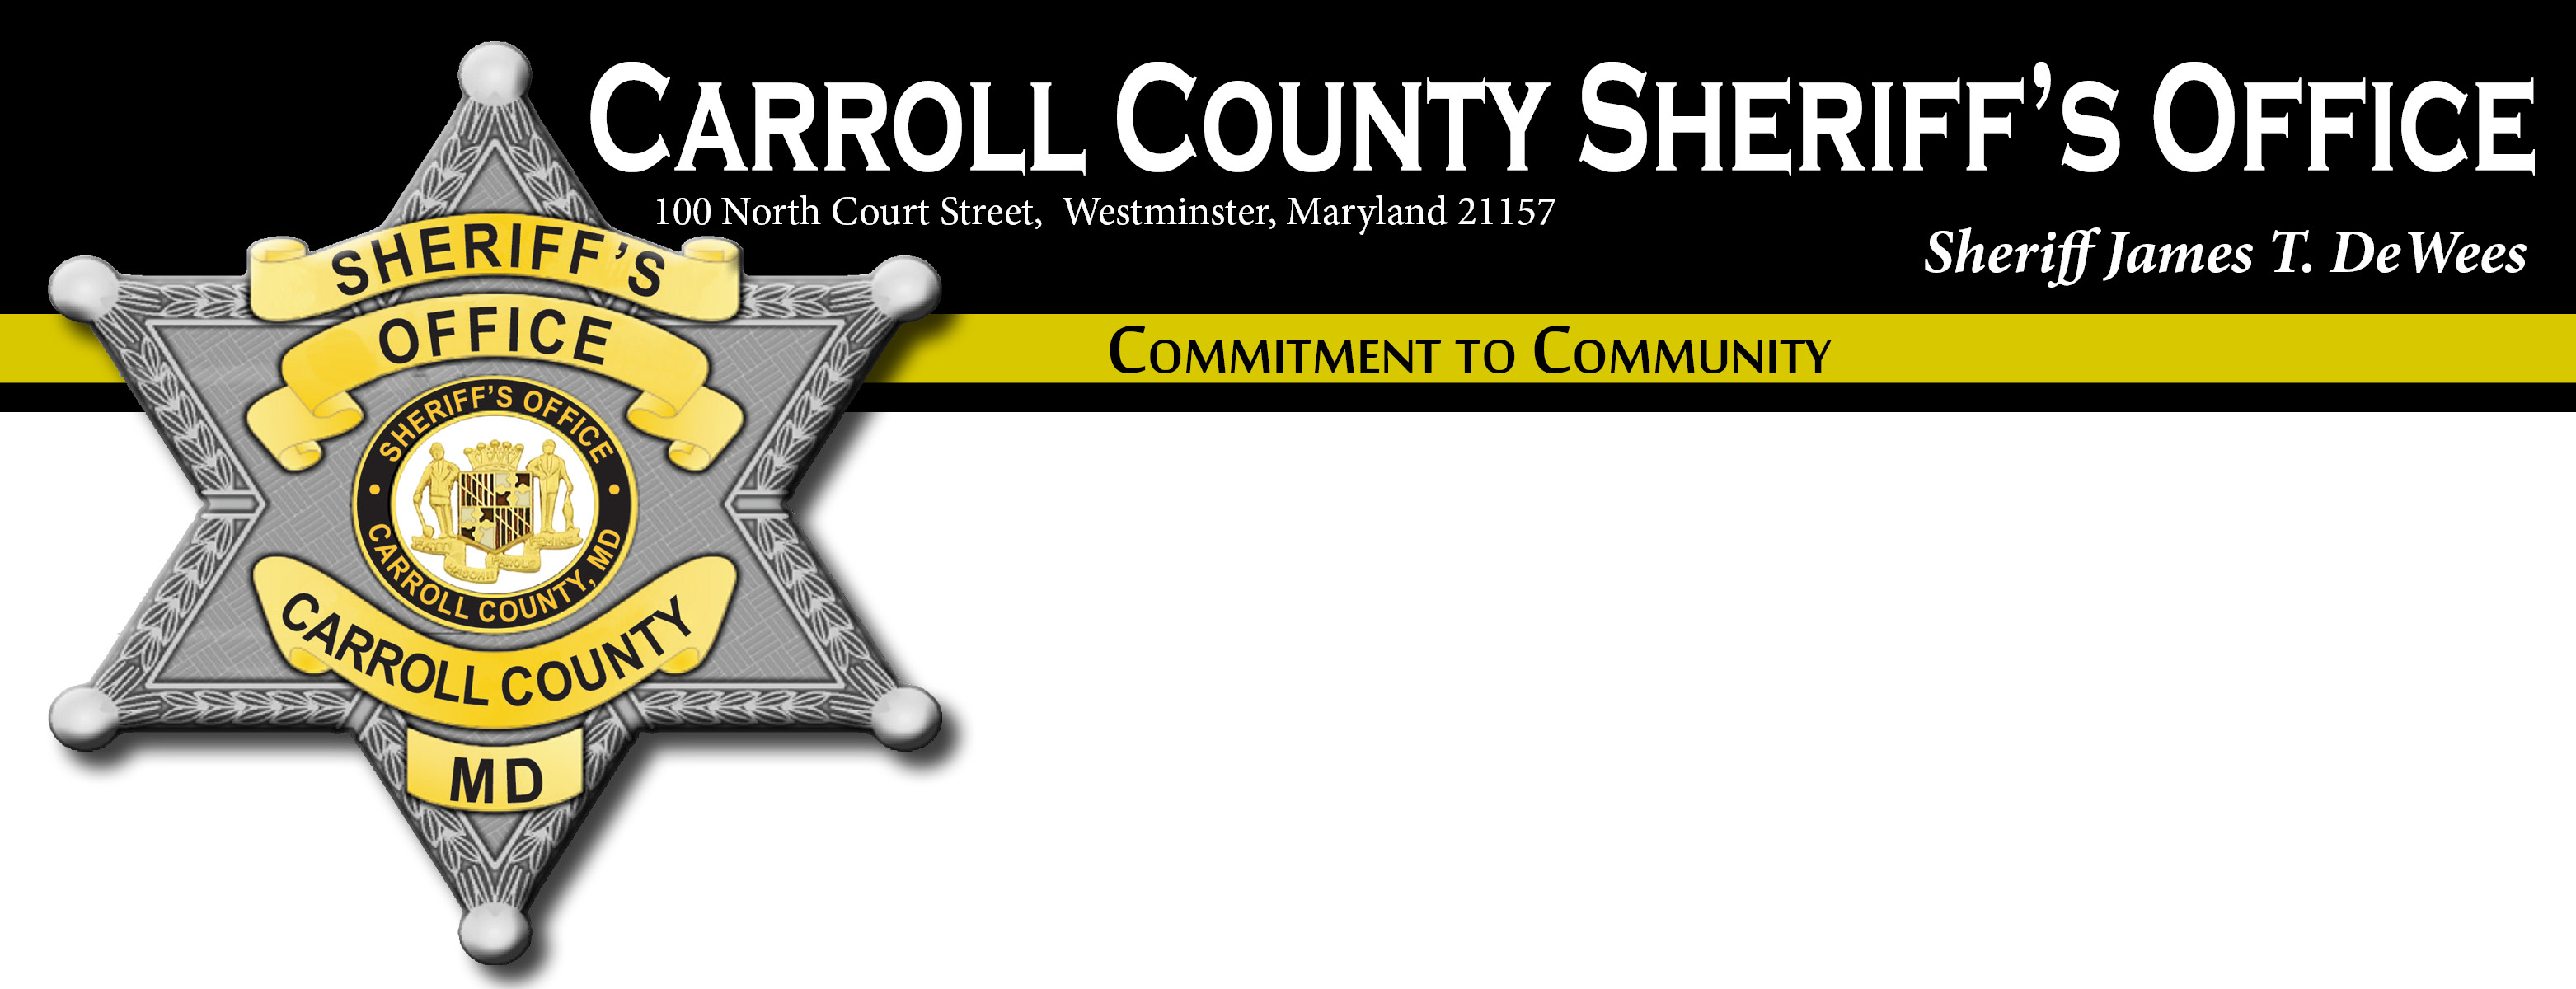 MD Carroll County Sheriffs Office Police Department | PoliceApp